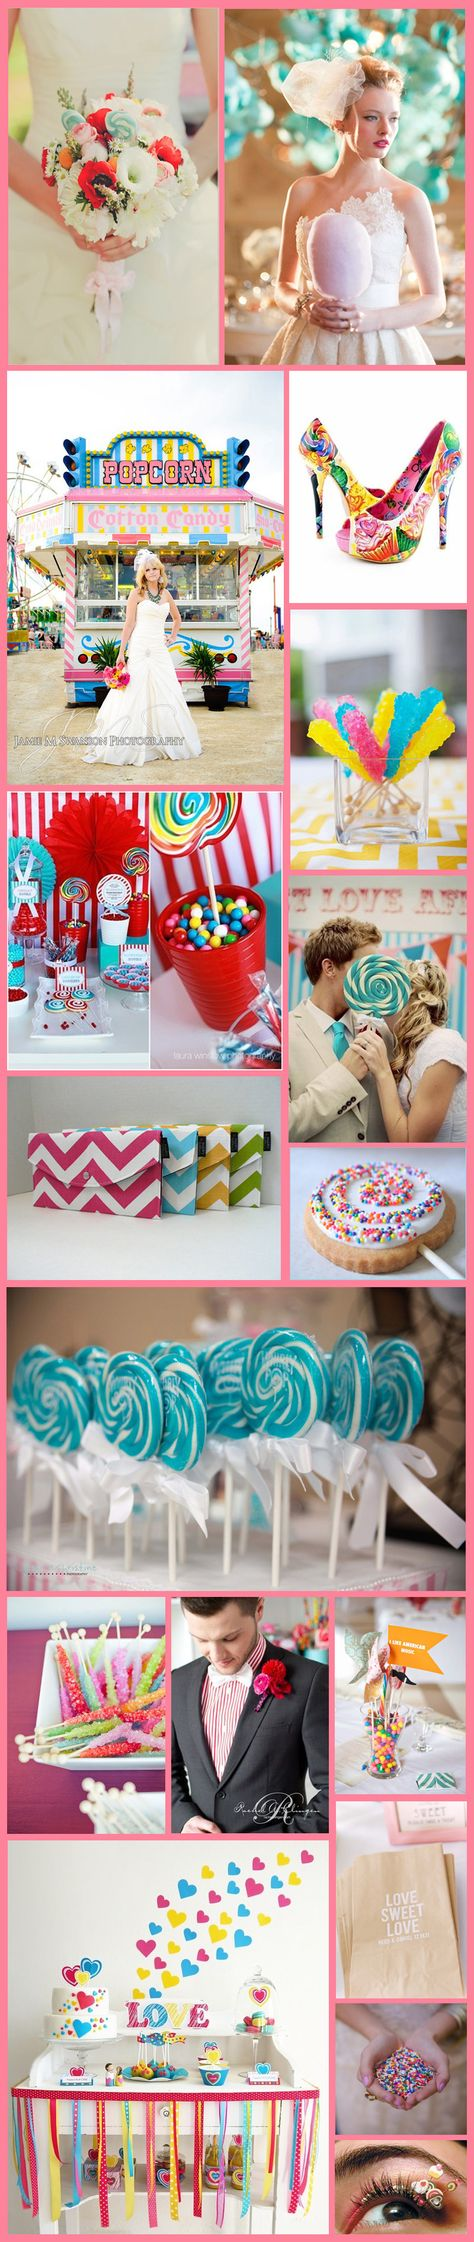 Candy Inspired Wedding Ideas #wedding #bride #weddingideas #weddingplanning #besthairsalon #indianapolis #gmichaelsalon